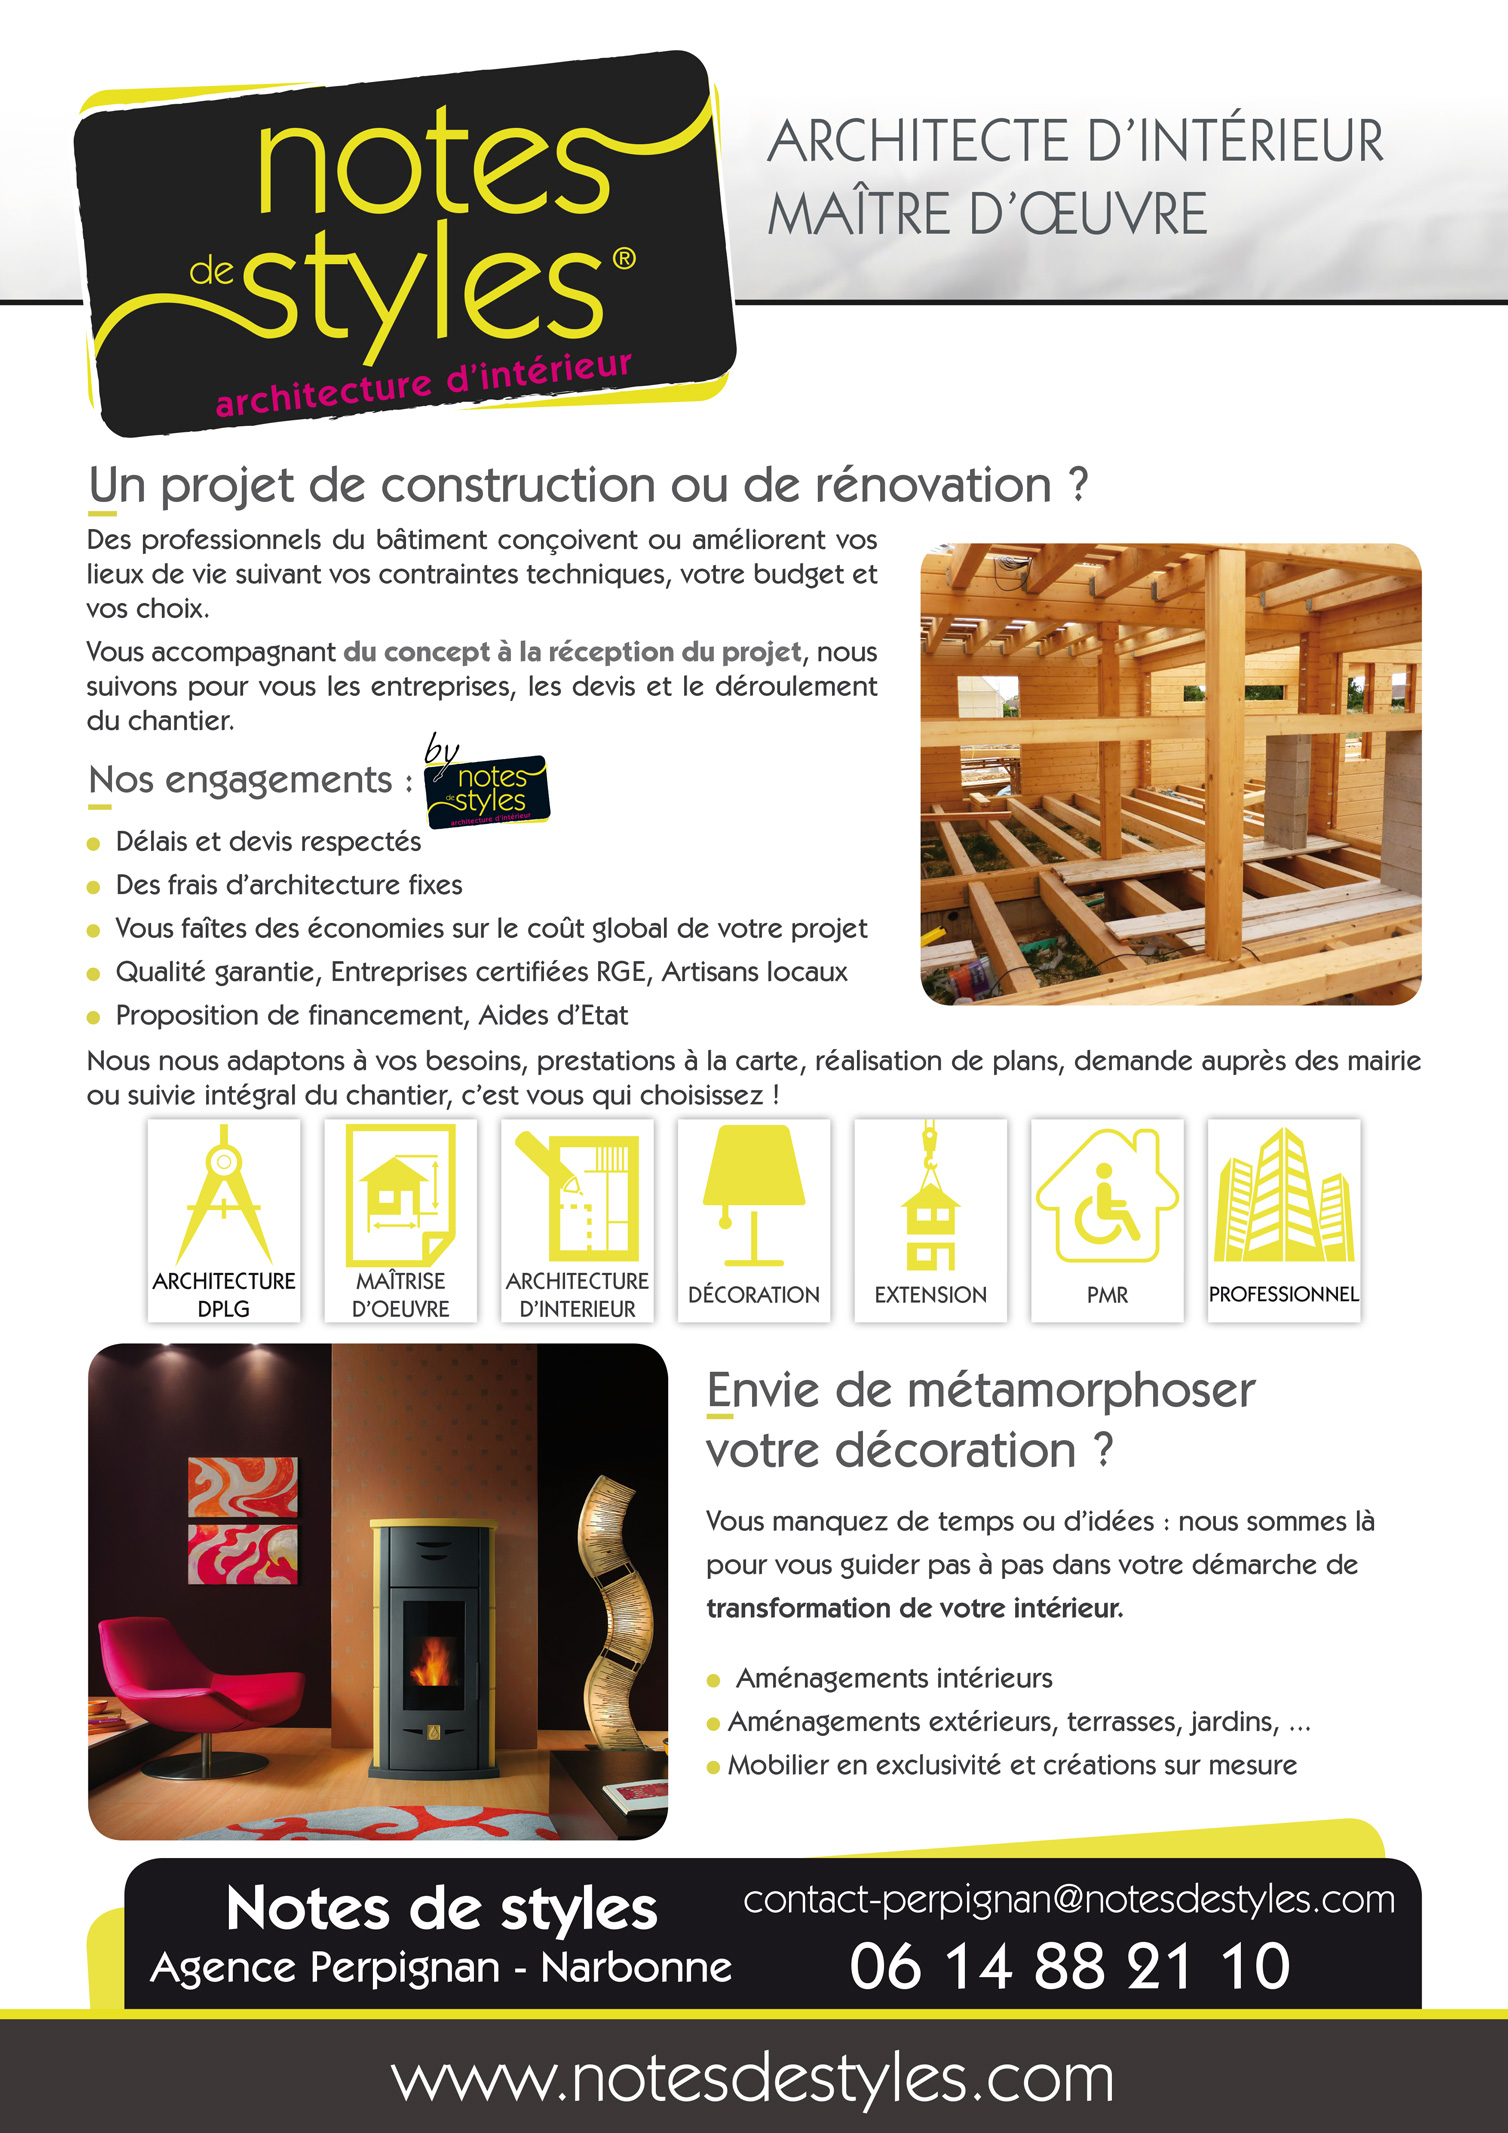 affiche publicitaire pour le r seau notes de styles architecte d 39 int rieur. Black Bedroom Furniture Sets. Home Design Ideas